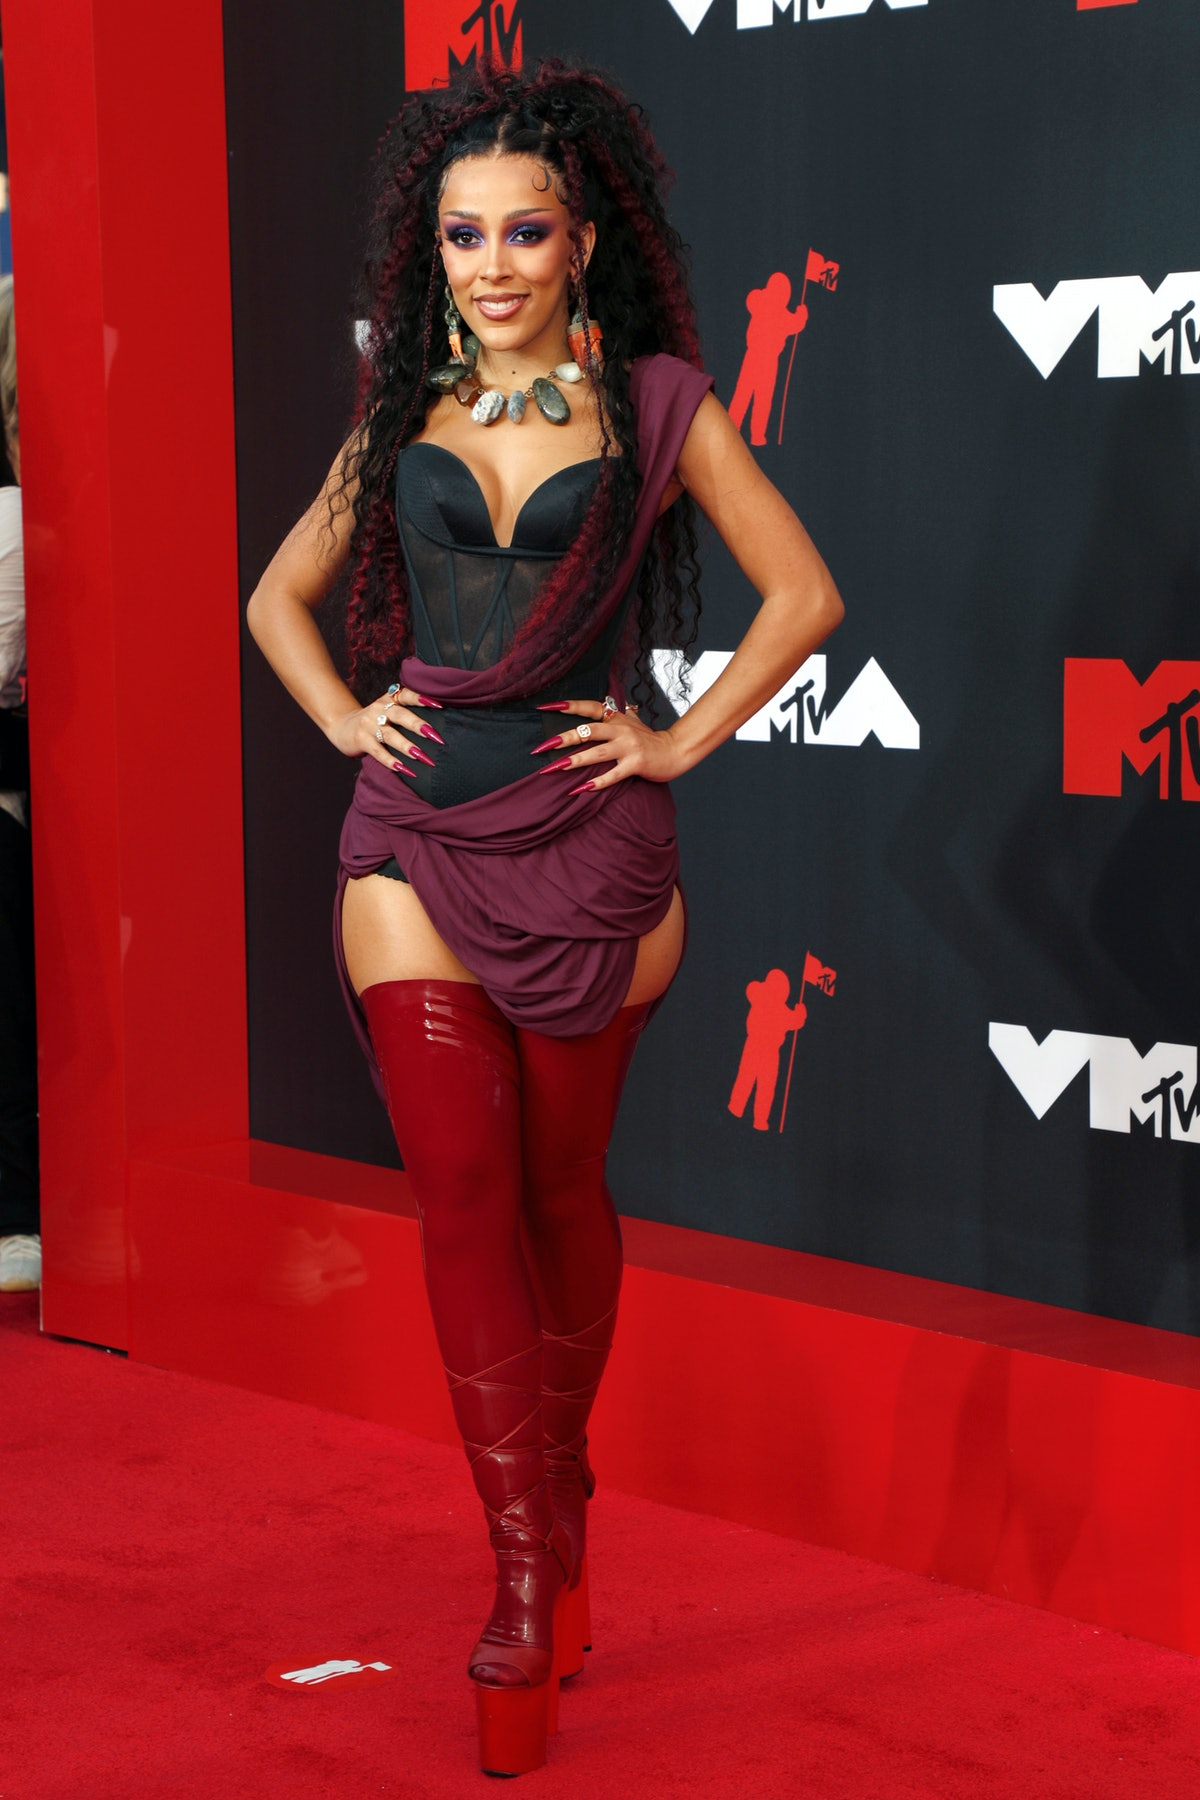 Doja Cat attends the 2021 MTV Video Music Awards at Barclays Center on September 12, 2021 in the Bro...